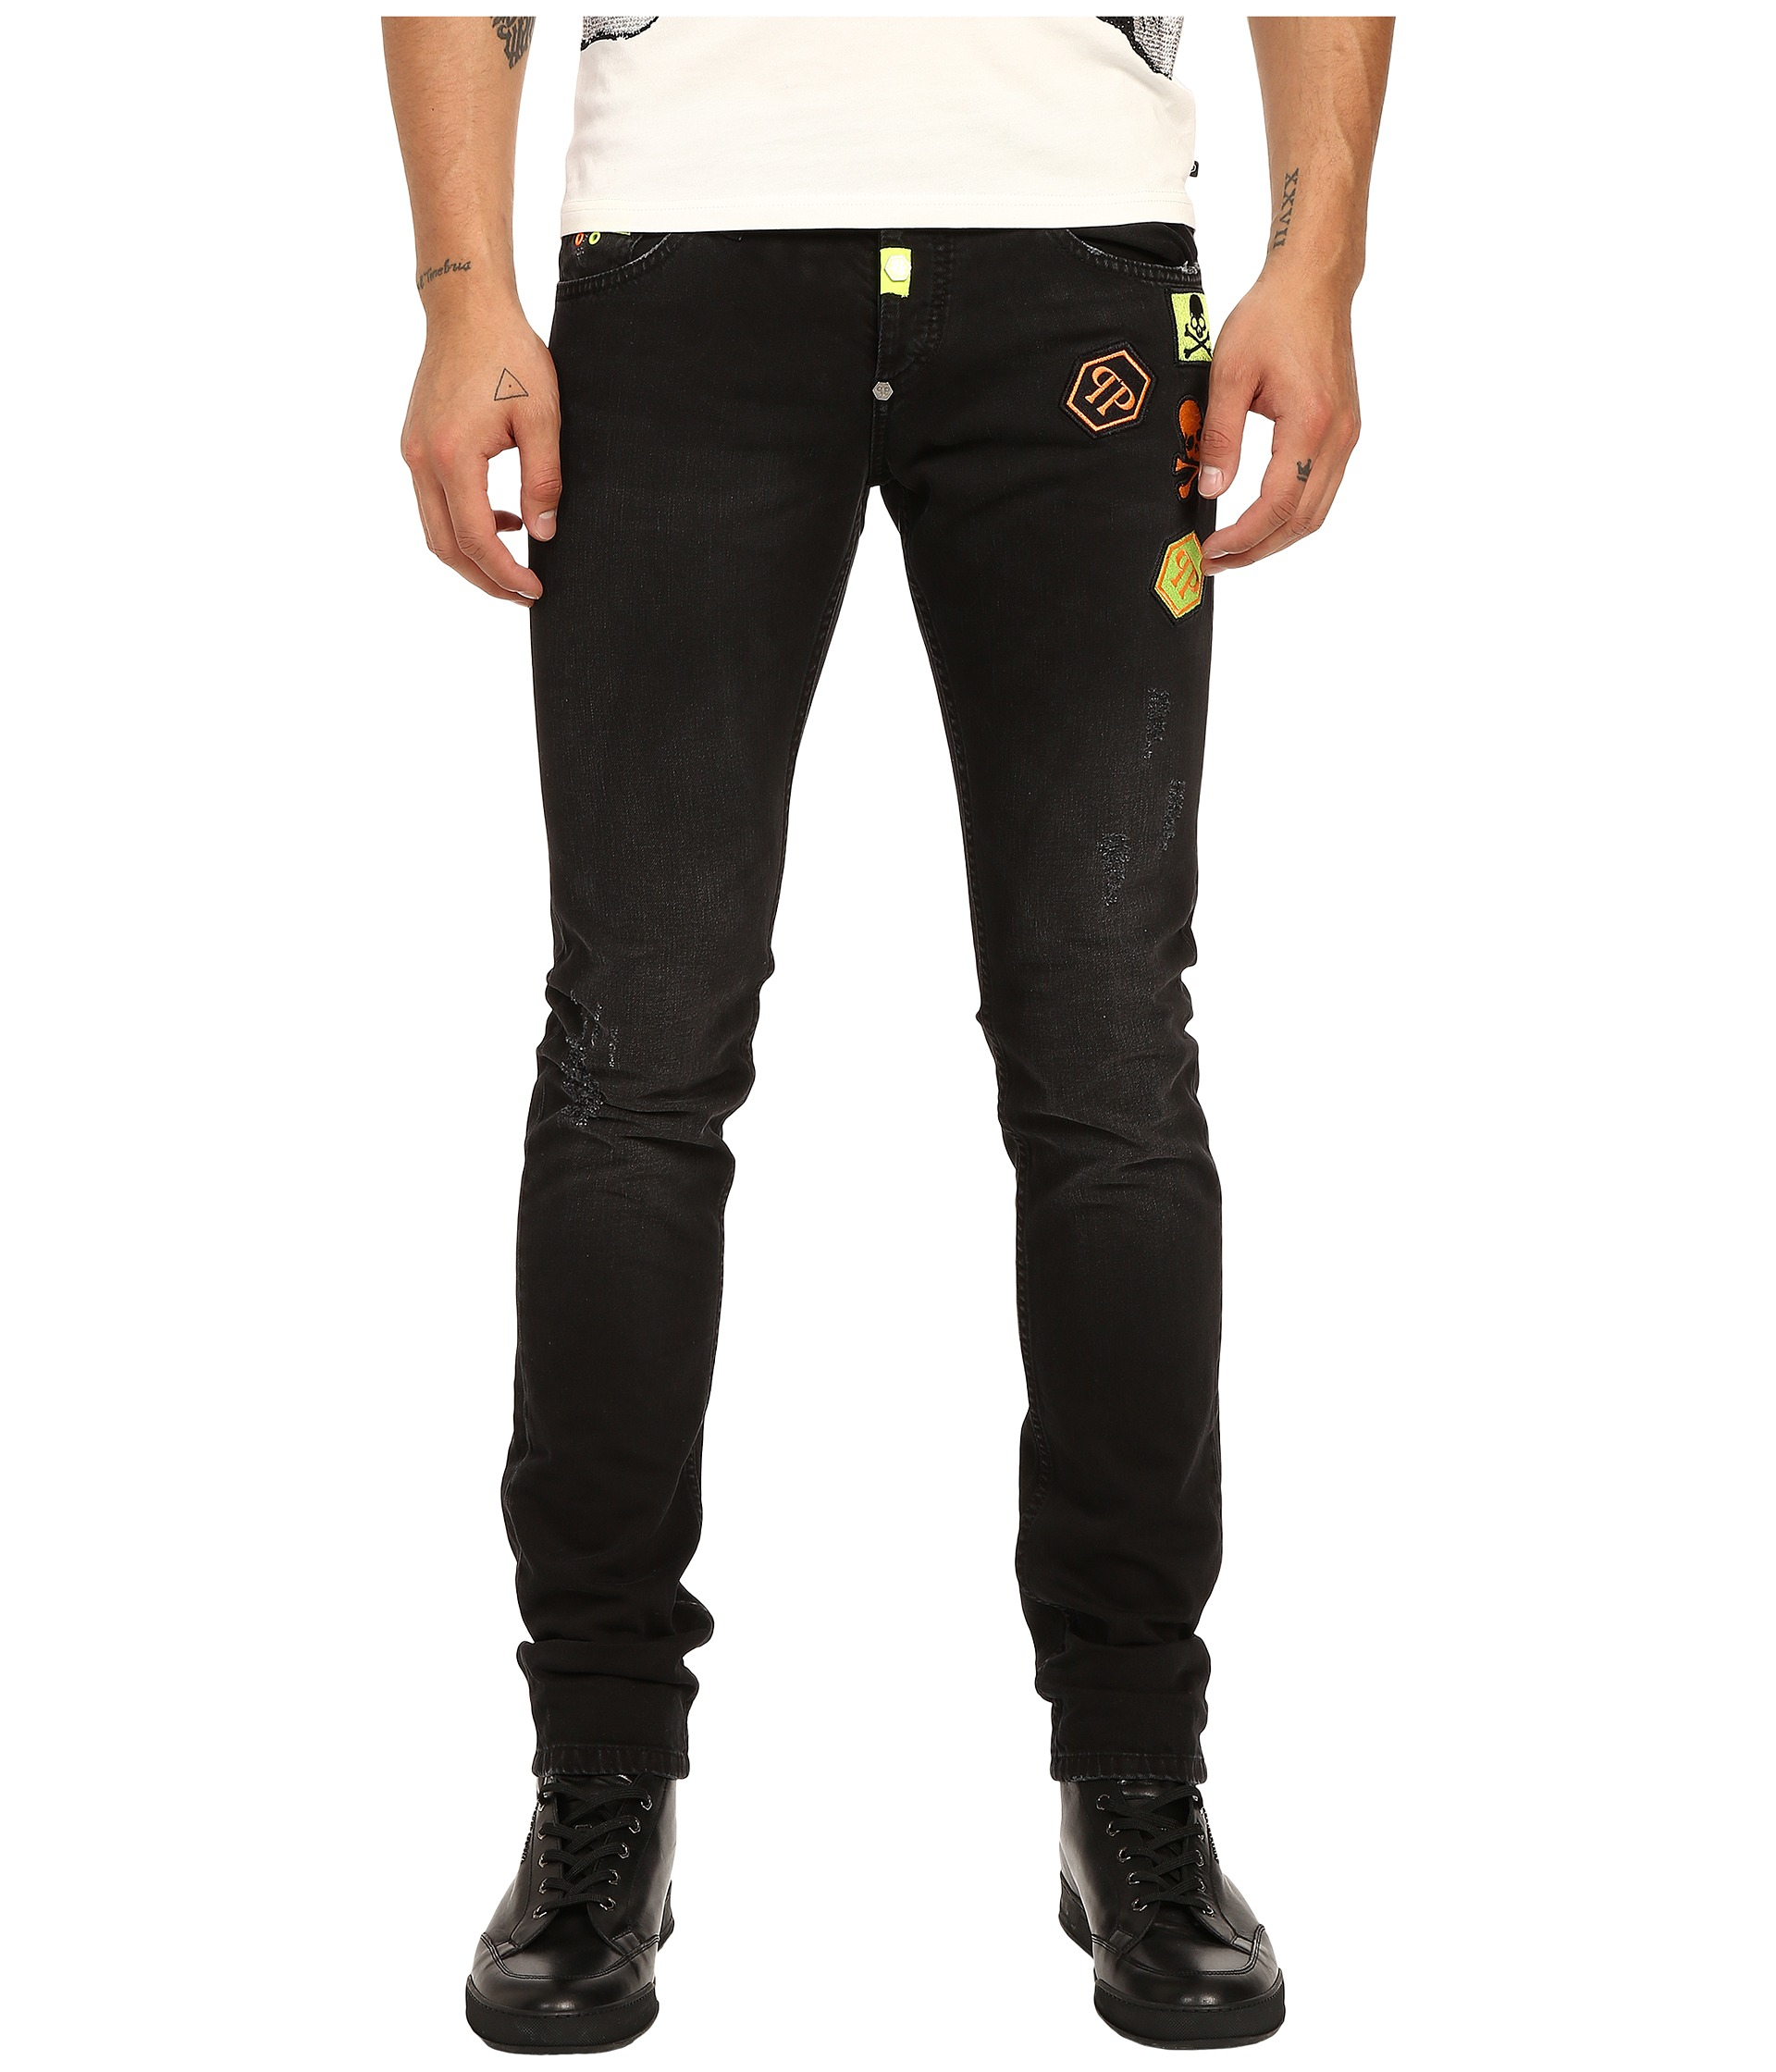 Philipp Plein skinny jeans Latest Collections Cheap Online MYIM7